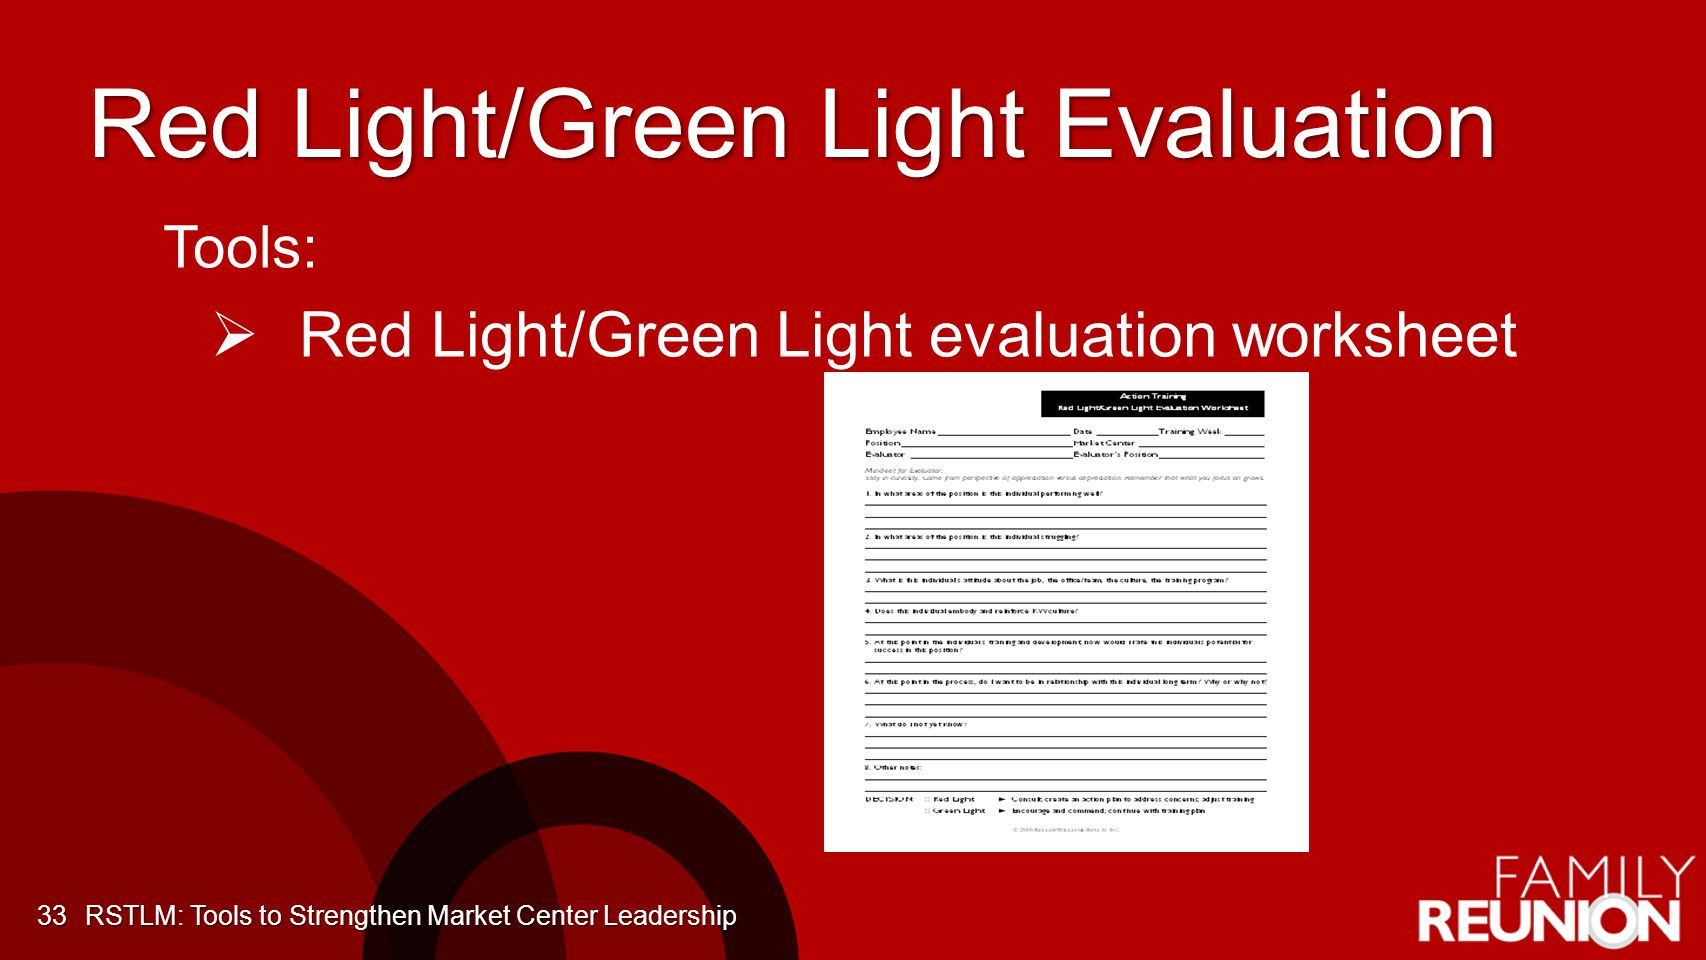 Red Light/Green Light Evaluation